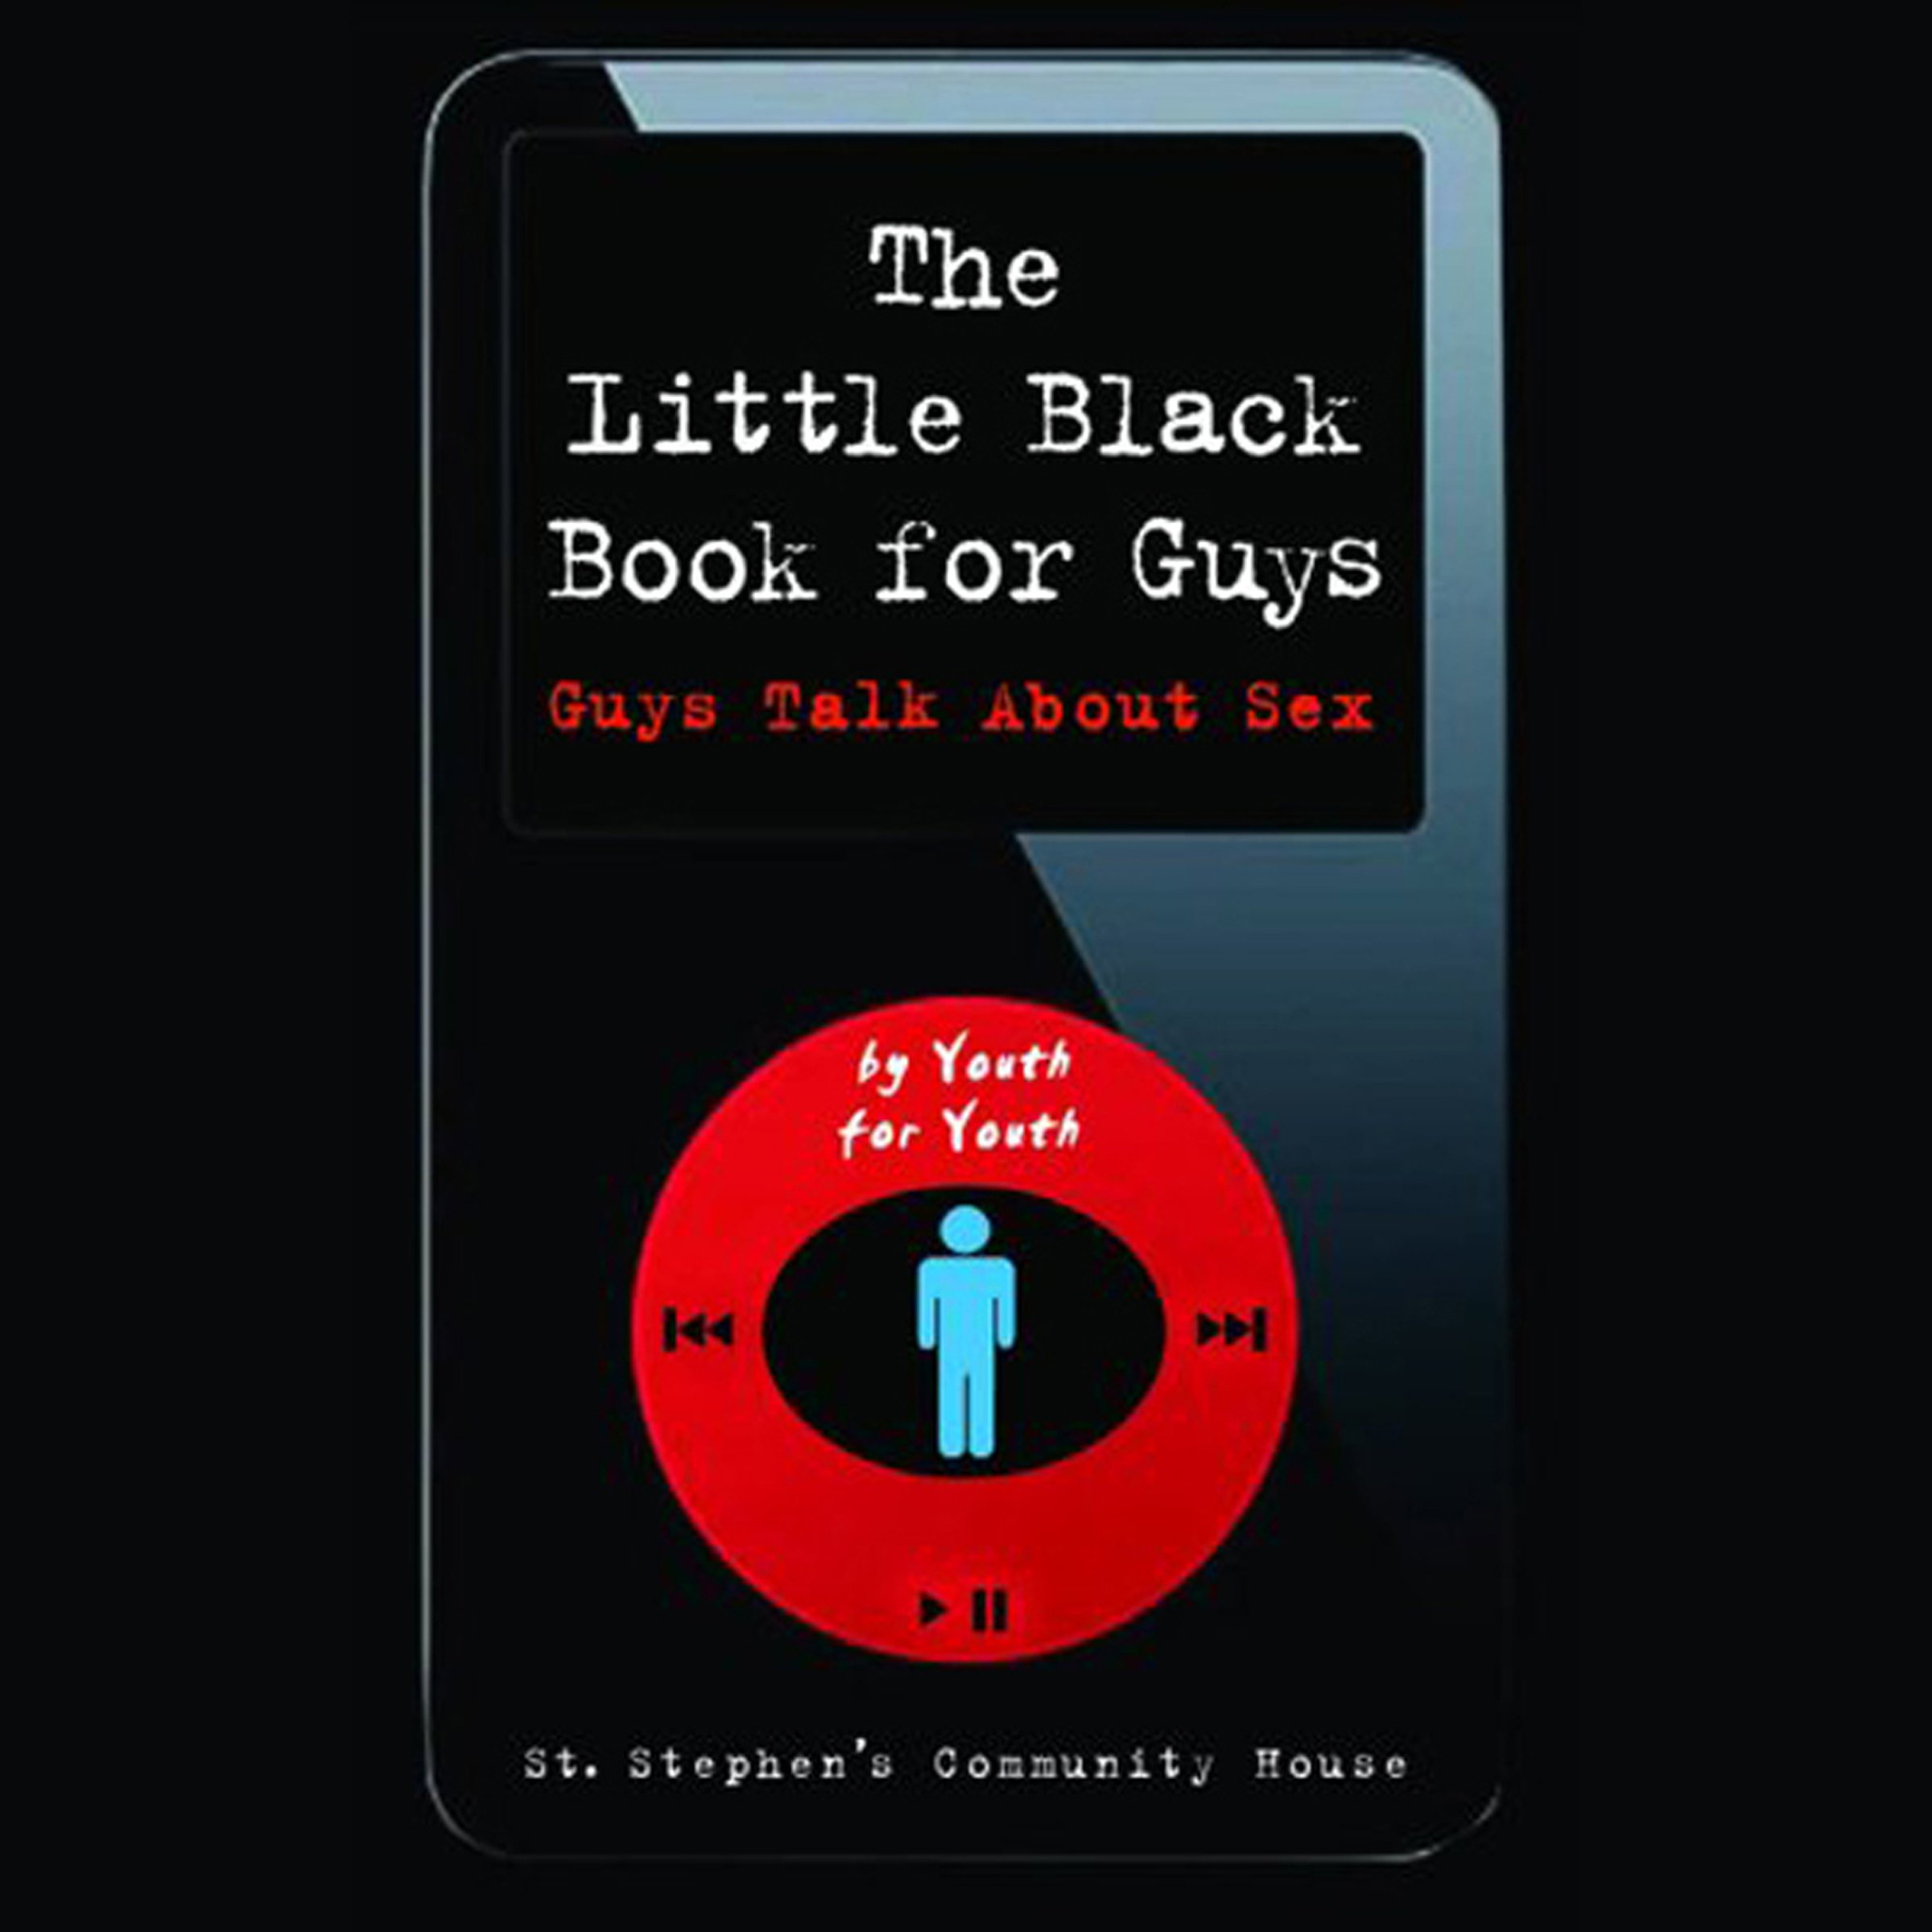 The Little Black Book for Guys: Guys Talk About Sex